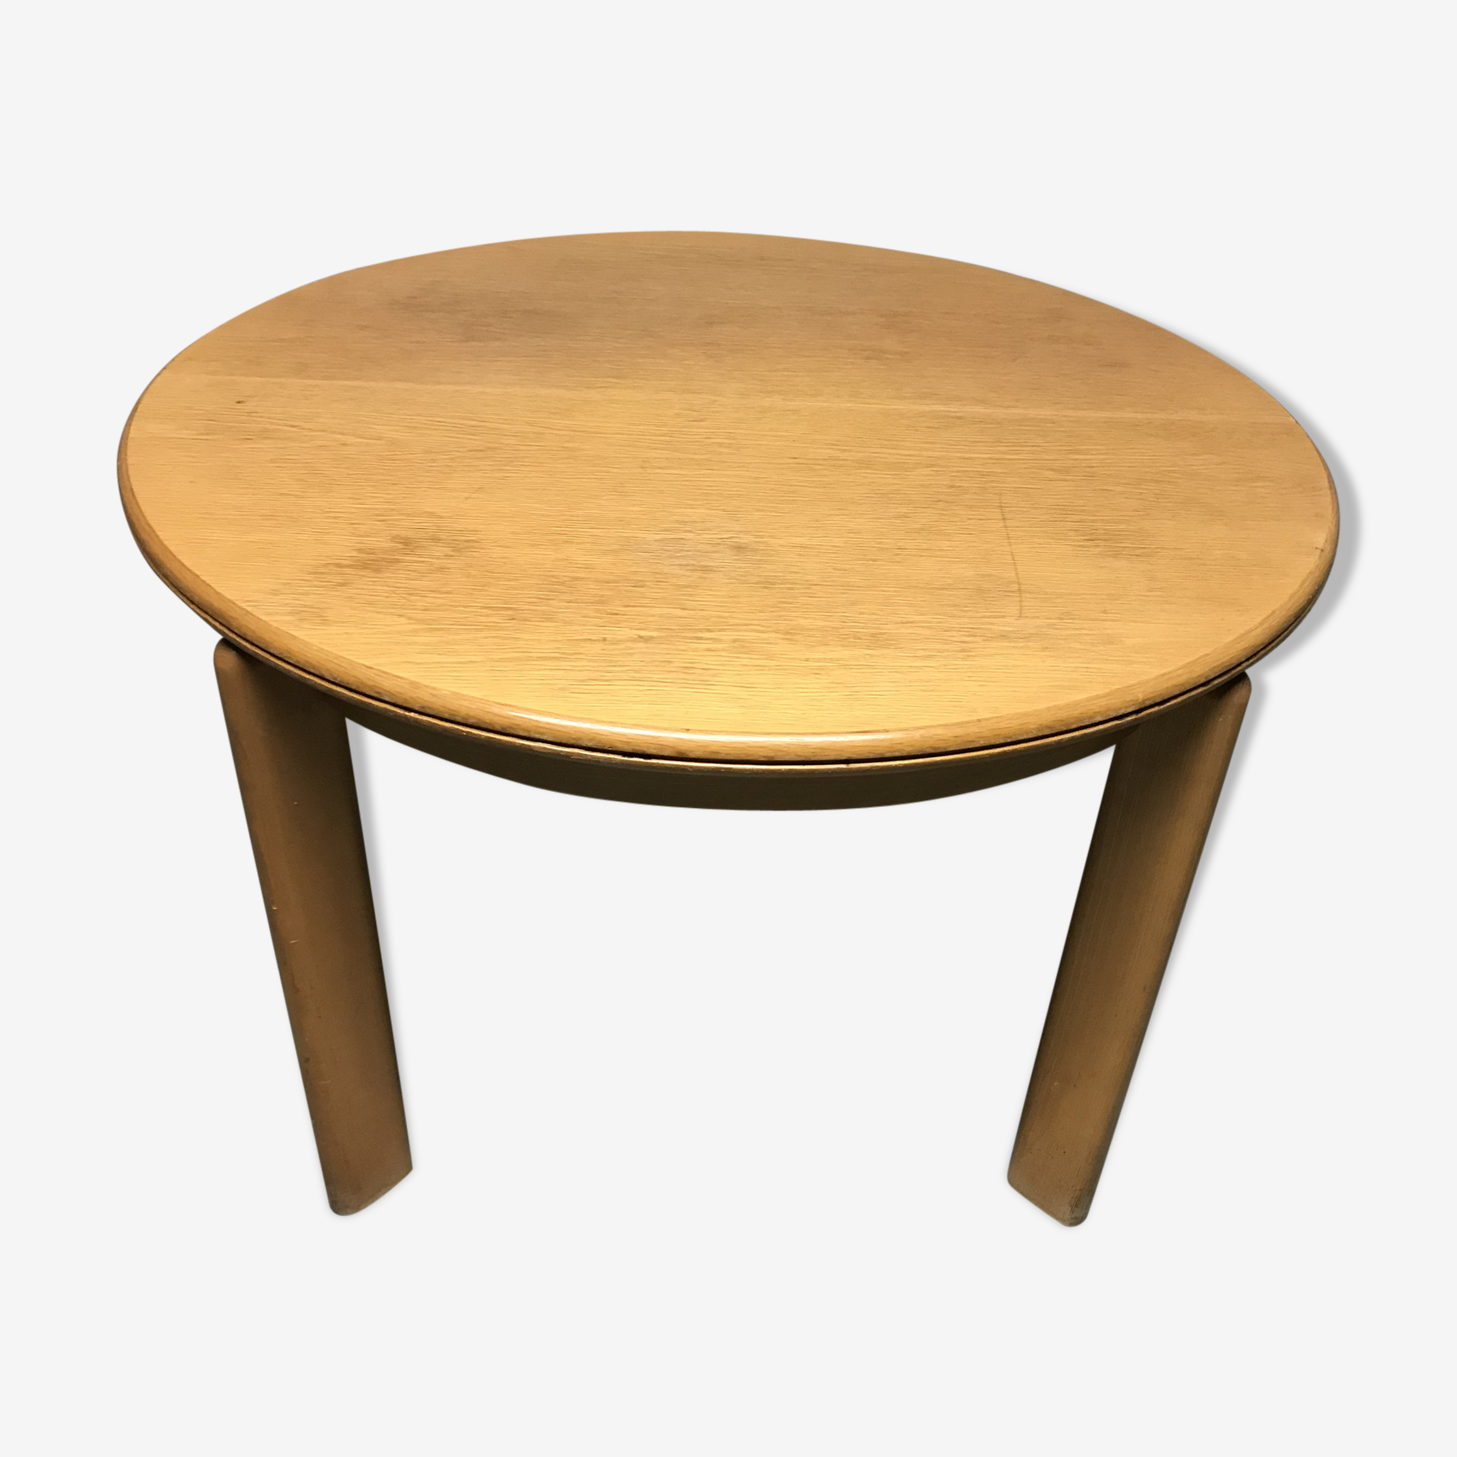 Round oak table with extension